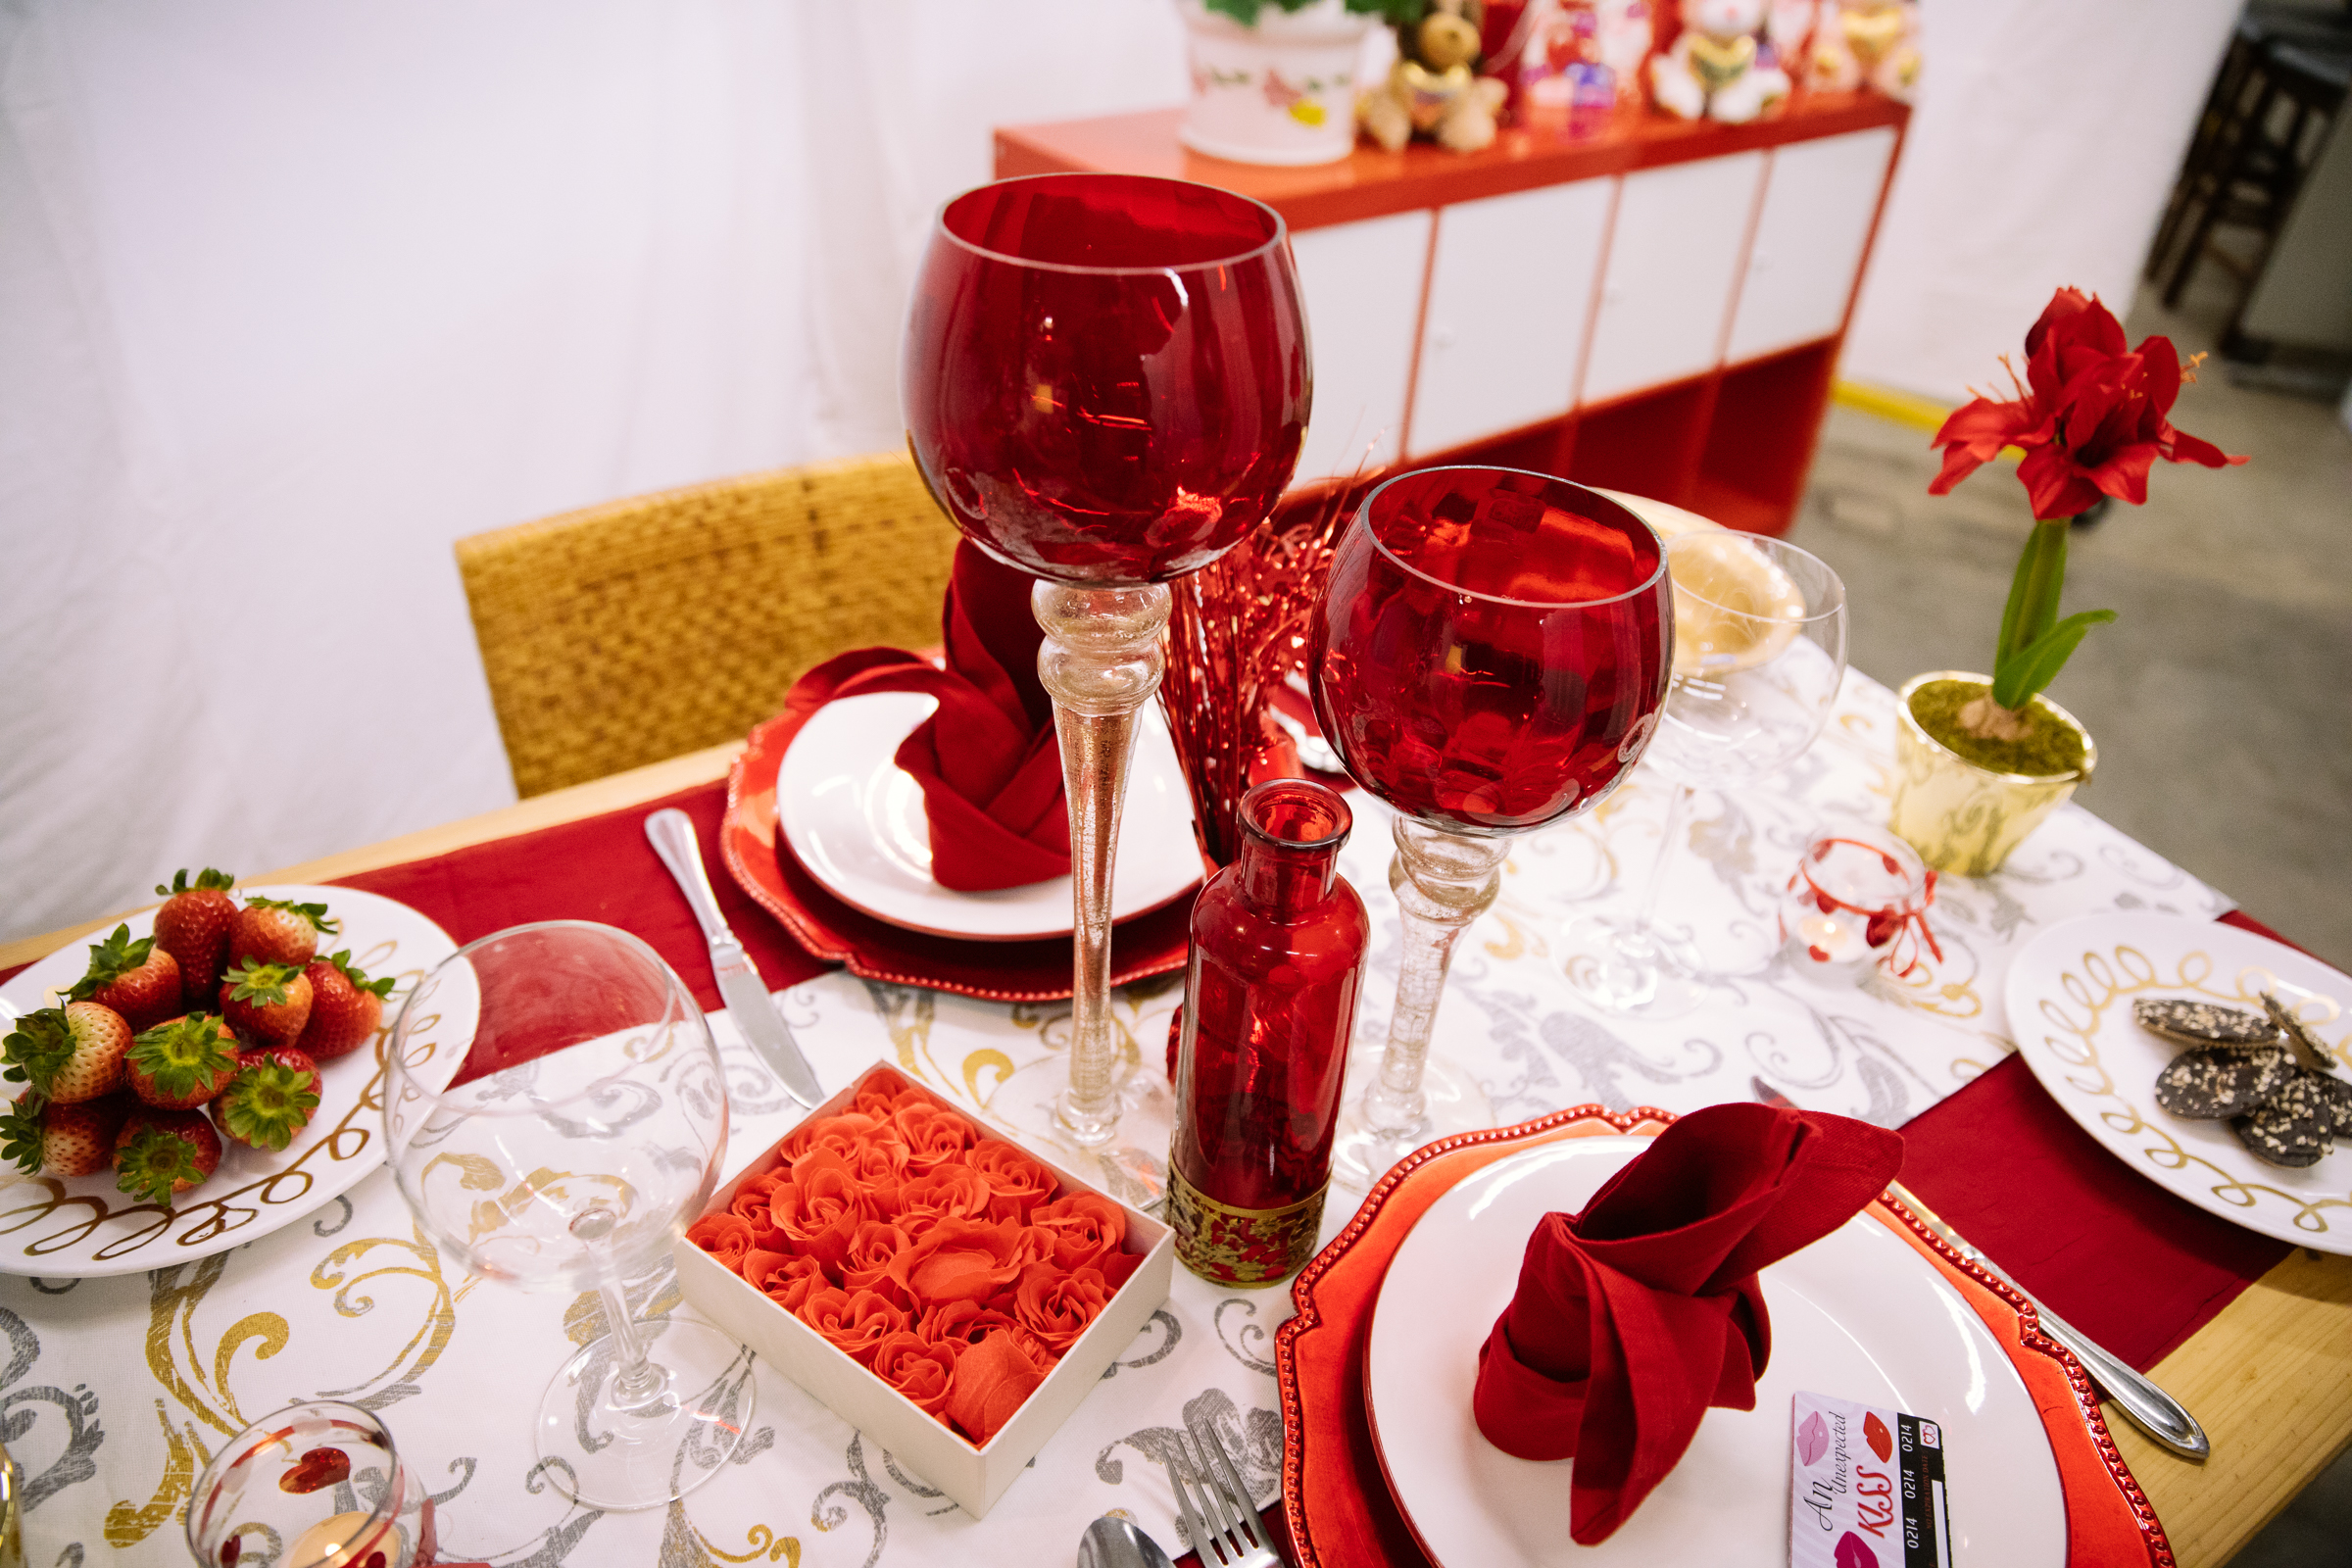 Seattle Goodwill is your one-stop shop for Valentine's Day. From new themed gift items to furniture and decor, you'll love the great selection and budget friendly finds. Plus, they have everything you need to create the perfect romantic tablescape, including plates and glass votive holders that you can make DIY projects with. (Photo courtesy Seattle Goodwill)